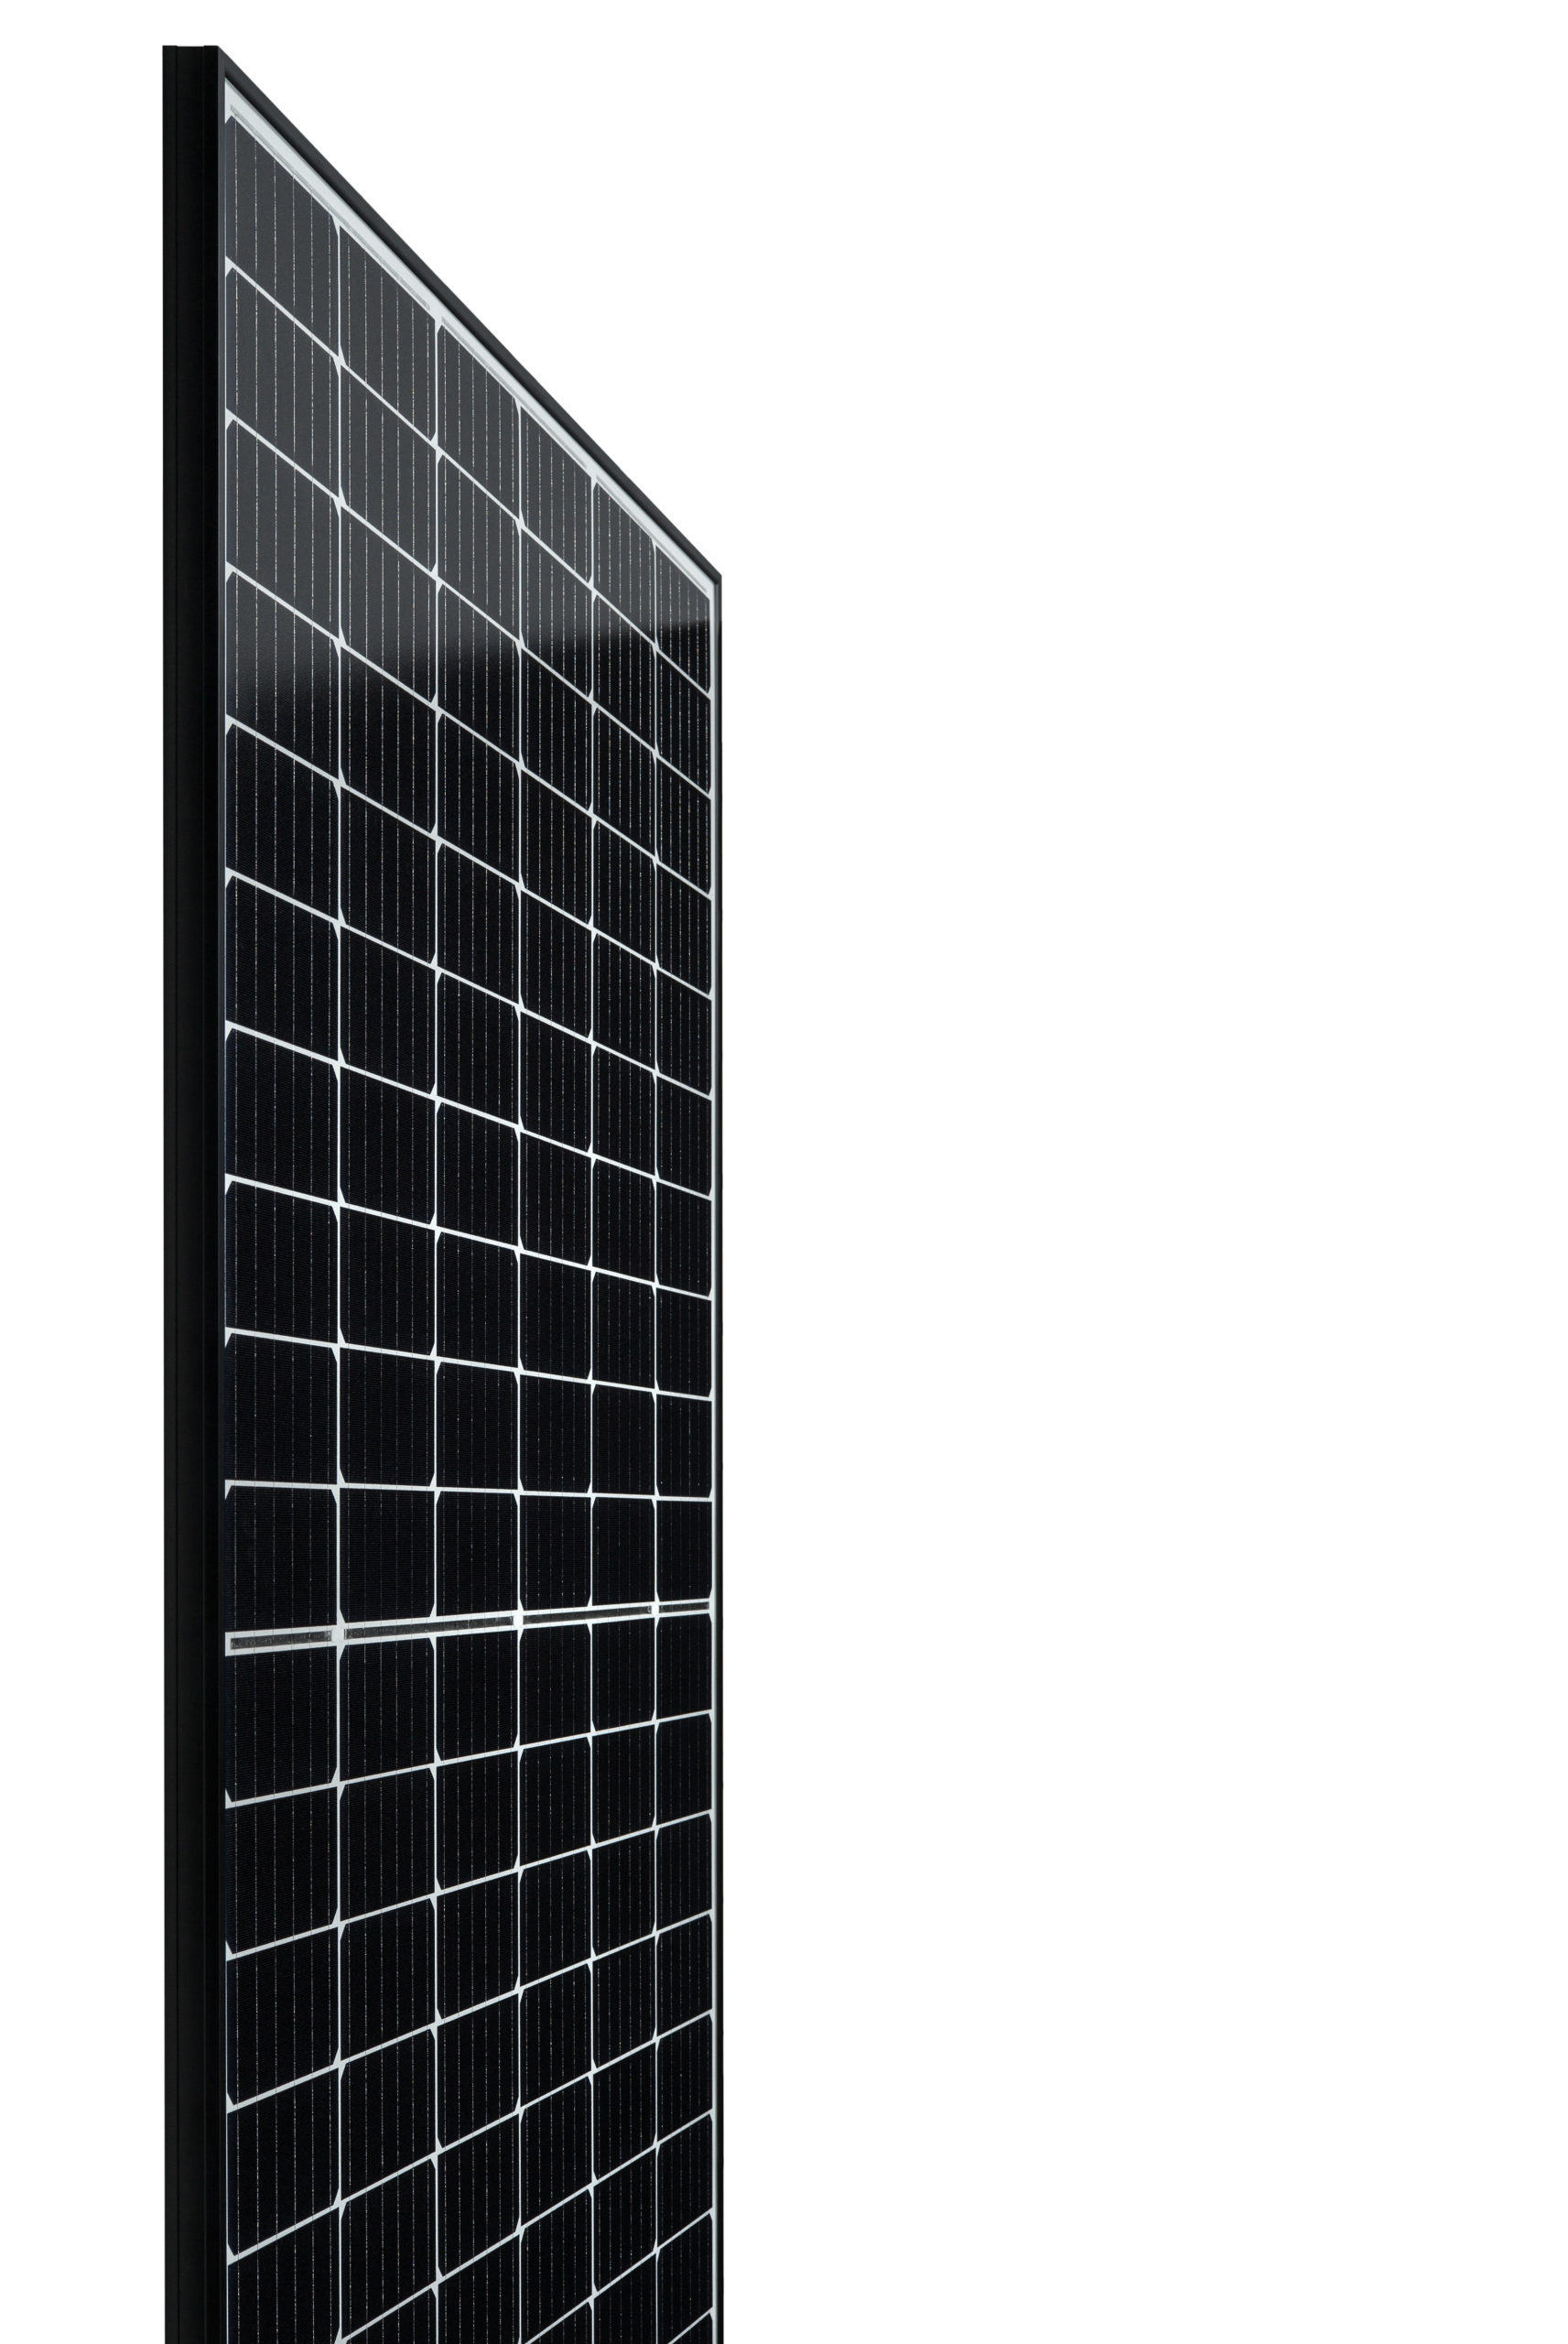 Hanwha Q CELLS Q.PEAK DUO-G5 module and Q.PEAK DUO BLK-G5 version use monocrystalline half-cut PERC (Passivated Emitter Rear Cell) technology in a six bus bar design, enabling module power classes up to 330Wp and 320Wp, respectively.